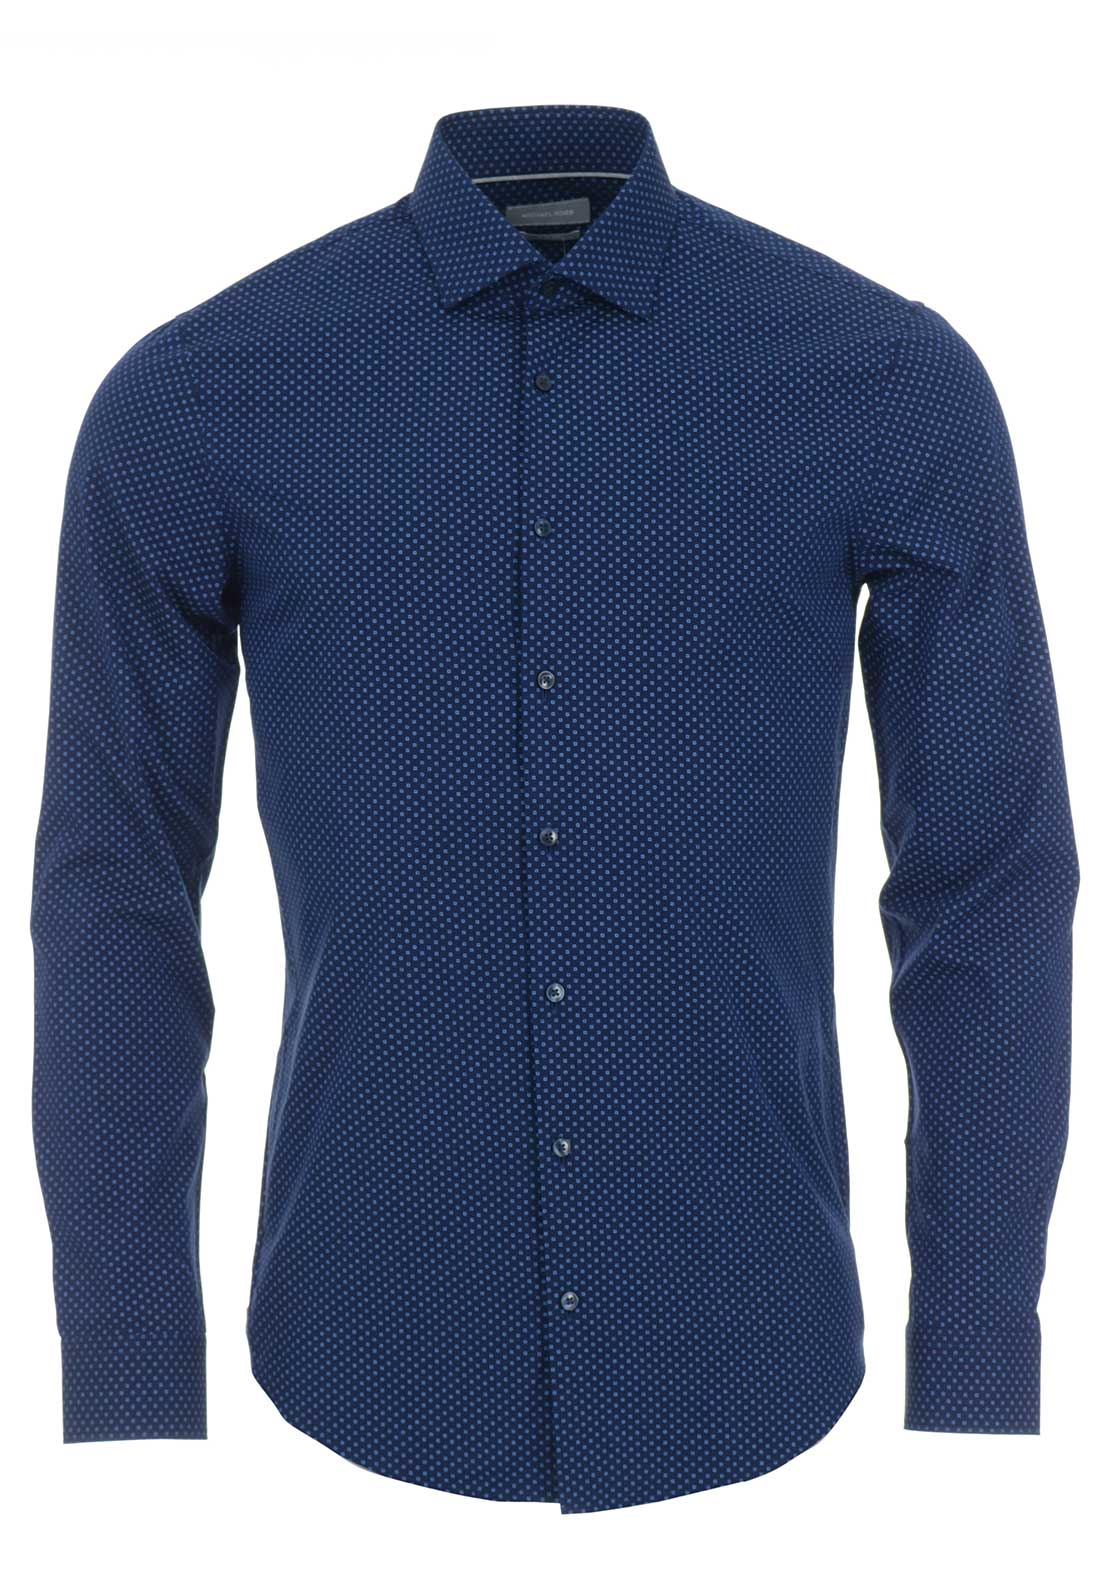 Michael Kors Slim Fit Shirt, Navy